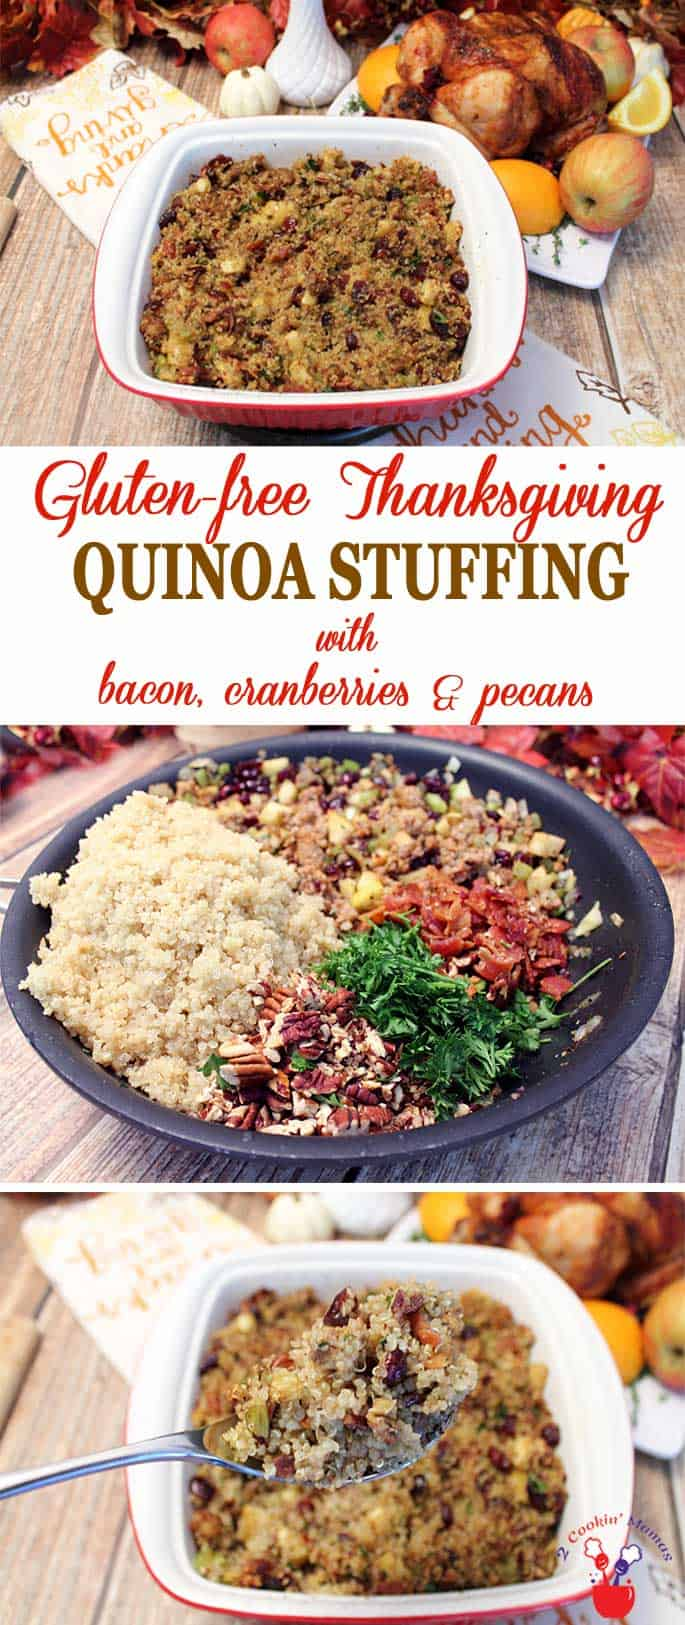 Gluten free Quinoa Stuffing | 2 Cookin Mamas A delicious and flavorful, protein-rich stuffing for those looking for something out of the ordinary. Our Quinoa Stuffing is tossed with apples, pecans, bacon and sausage for a hearty side that is also gluten-free. #stuffing #quinoastuffing #glutenfreestuffing #Thanksgiving #glutenfree